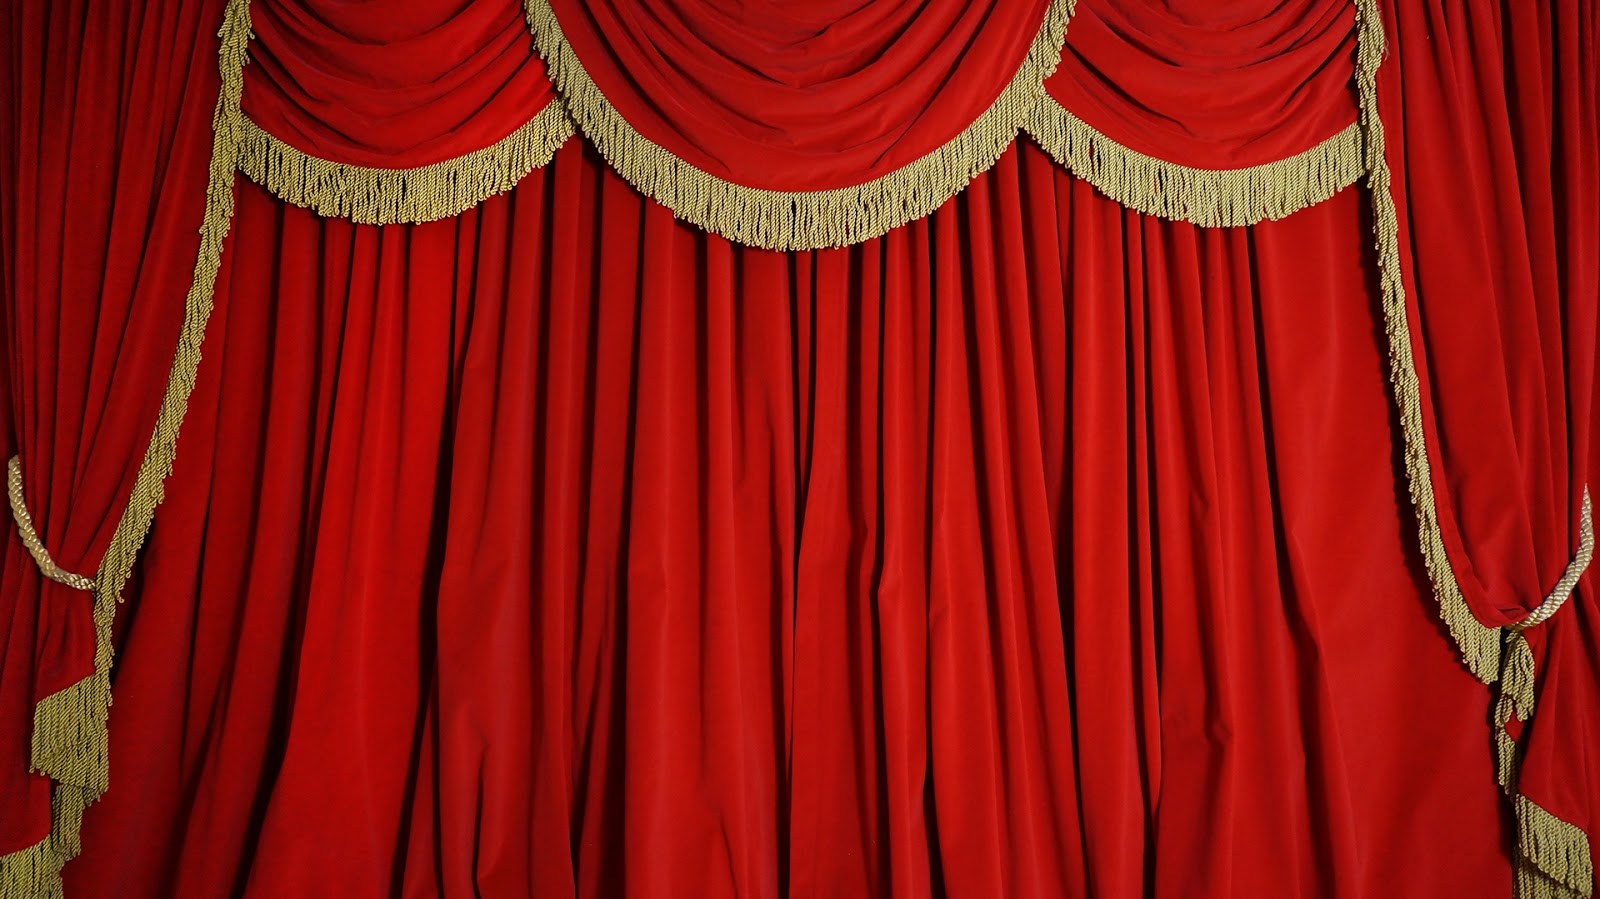 show curtain | Boatylicious.org